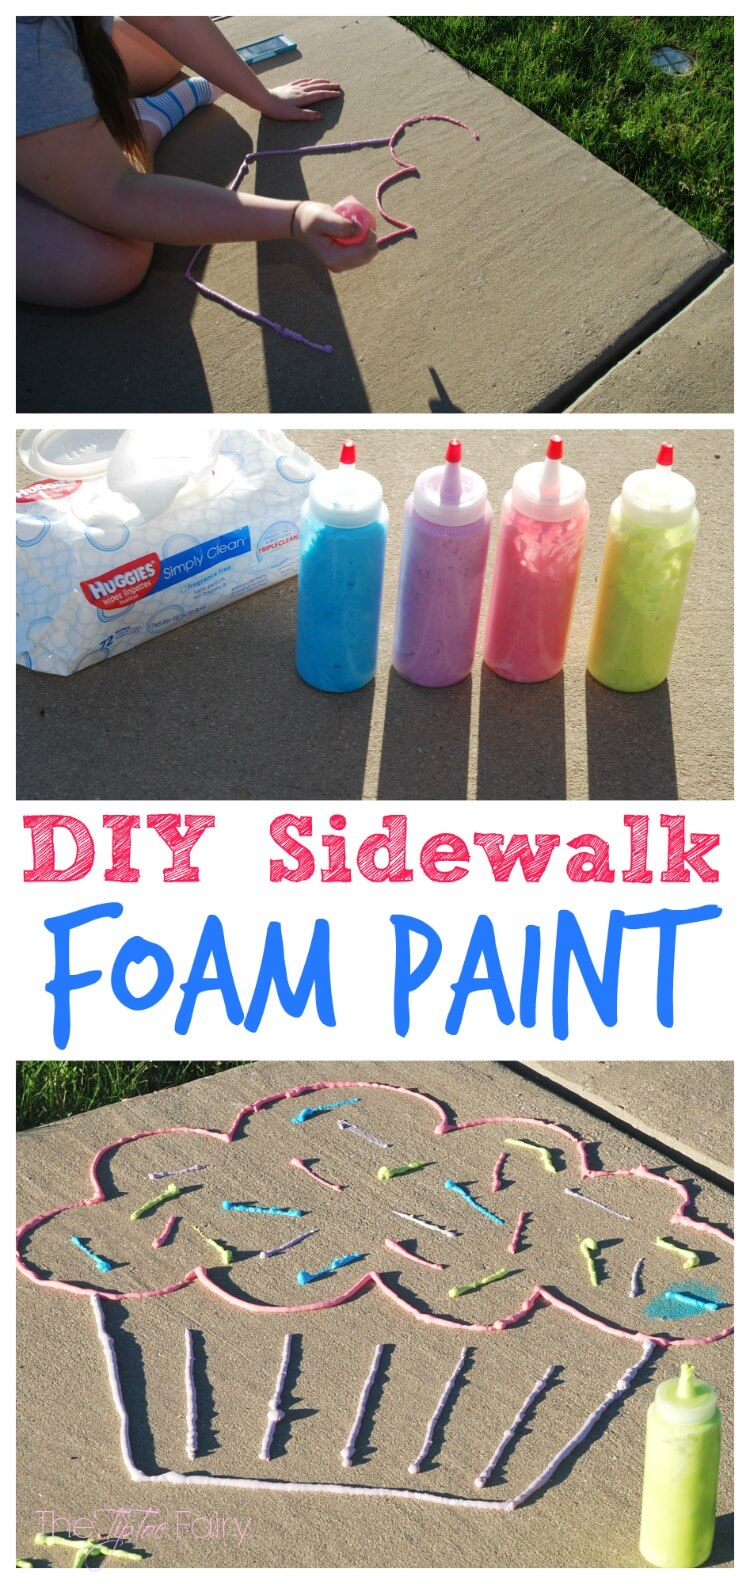 Diy sidewalk foam paint the tiptoe fairy for Doing crafts at home for money